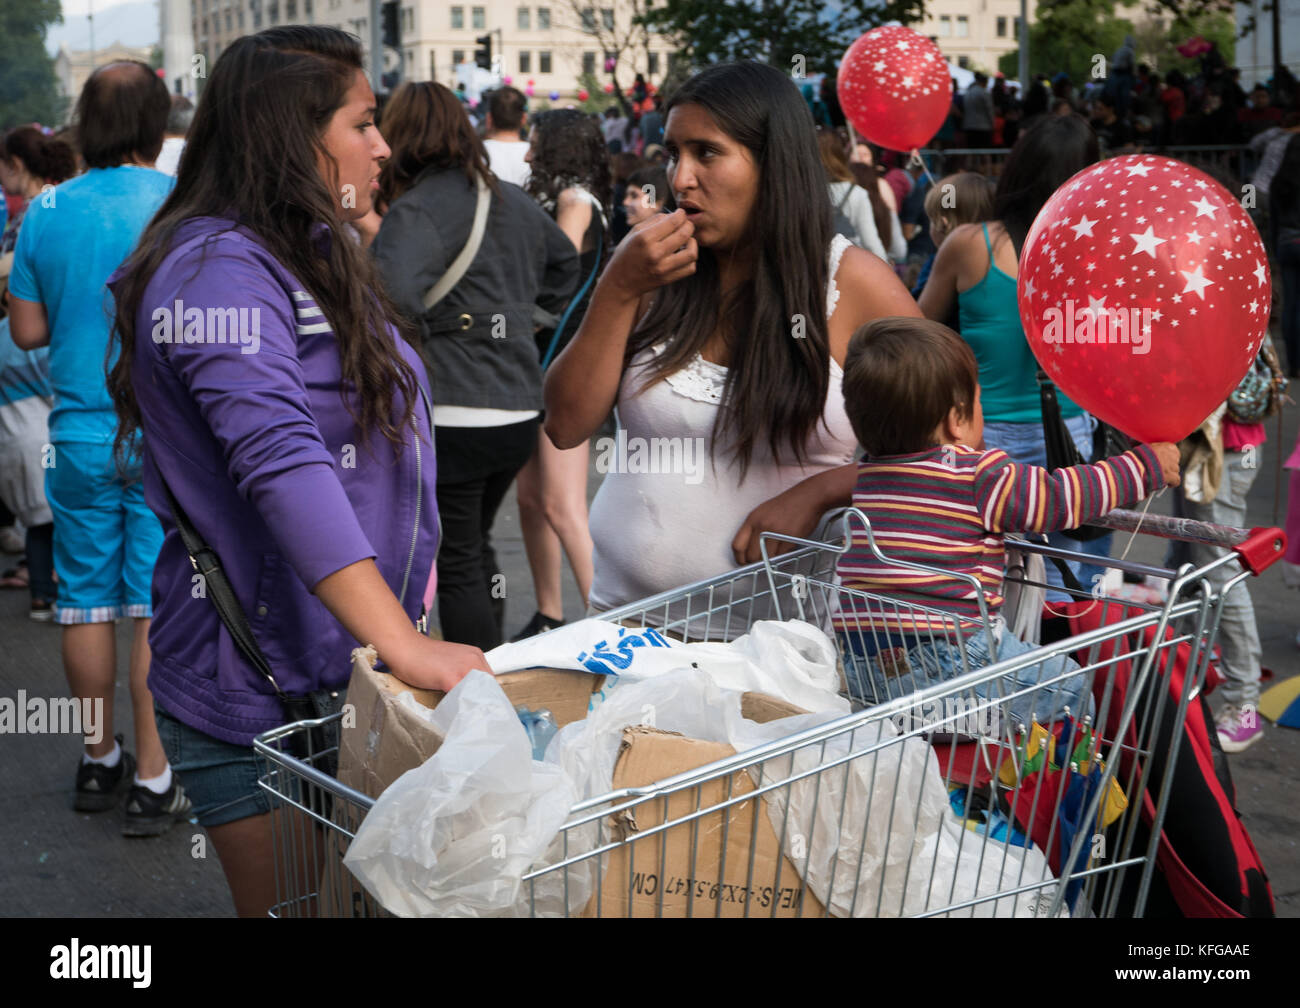 Two young women with baby in shopping cart with red Christmas balloons smoking a joint during a Christmas parade - Stock Image